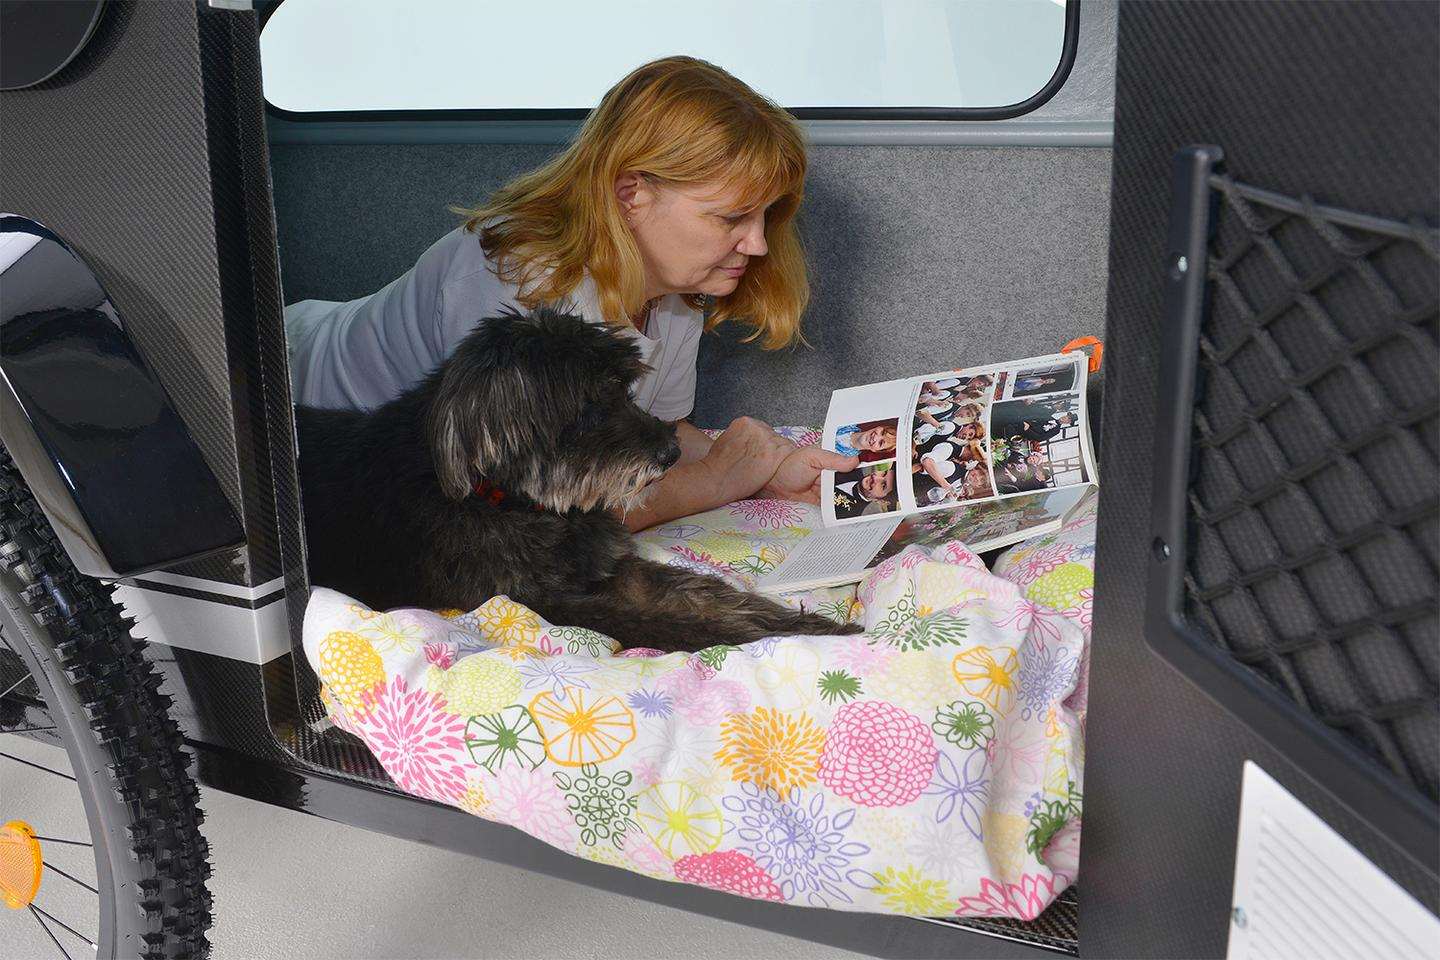 It's not a two-person trailer, but maybe a single person + dog?